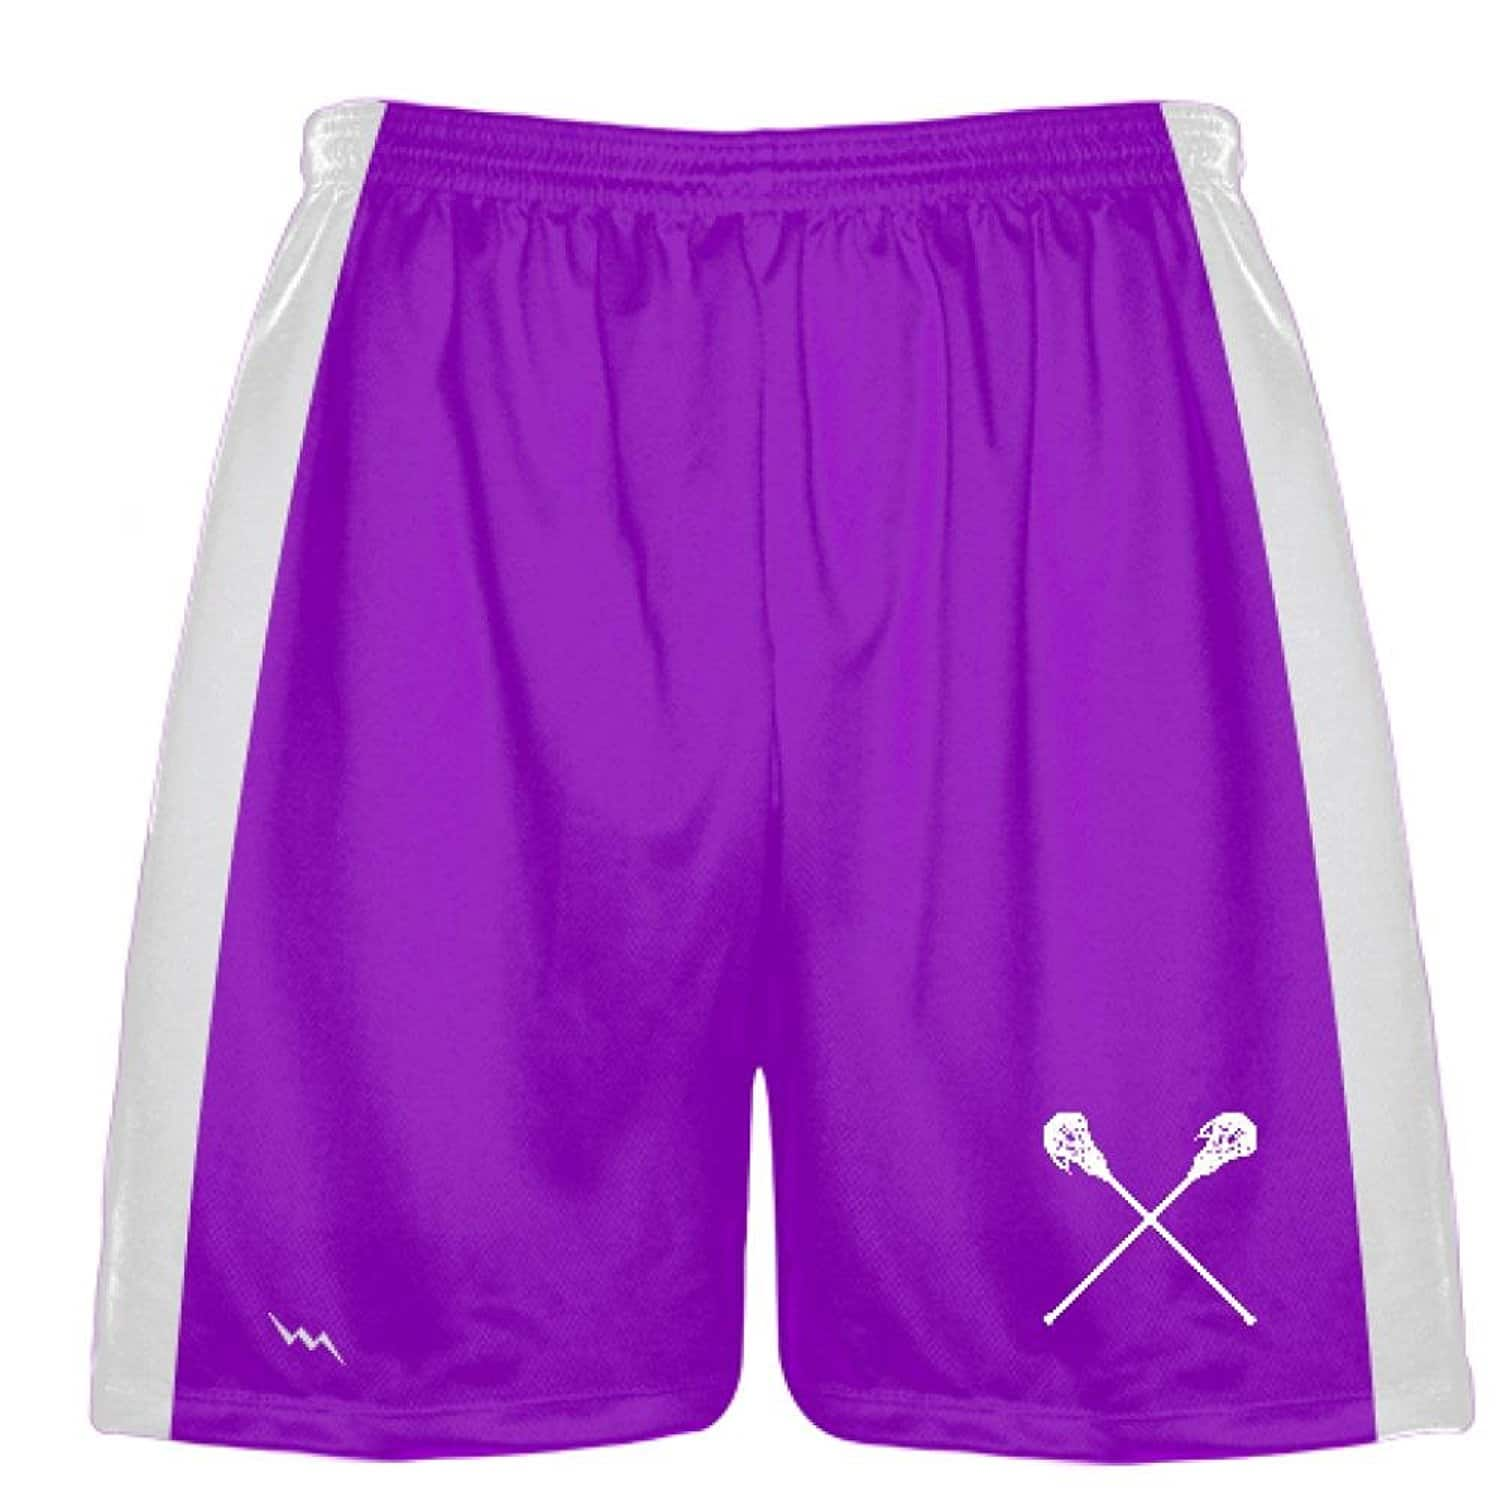 Variation-689408840977-of-LightningWear-Purple-Lacrosse-Short-8211-Adult-and-Youth-Solid-Lacrosse-Shorts-8211-Athl-B078N86ZQL-255987